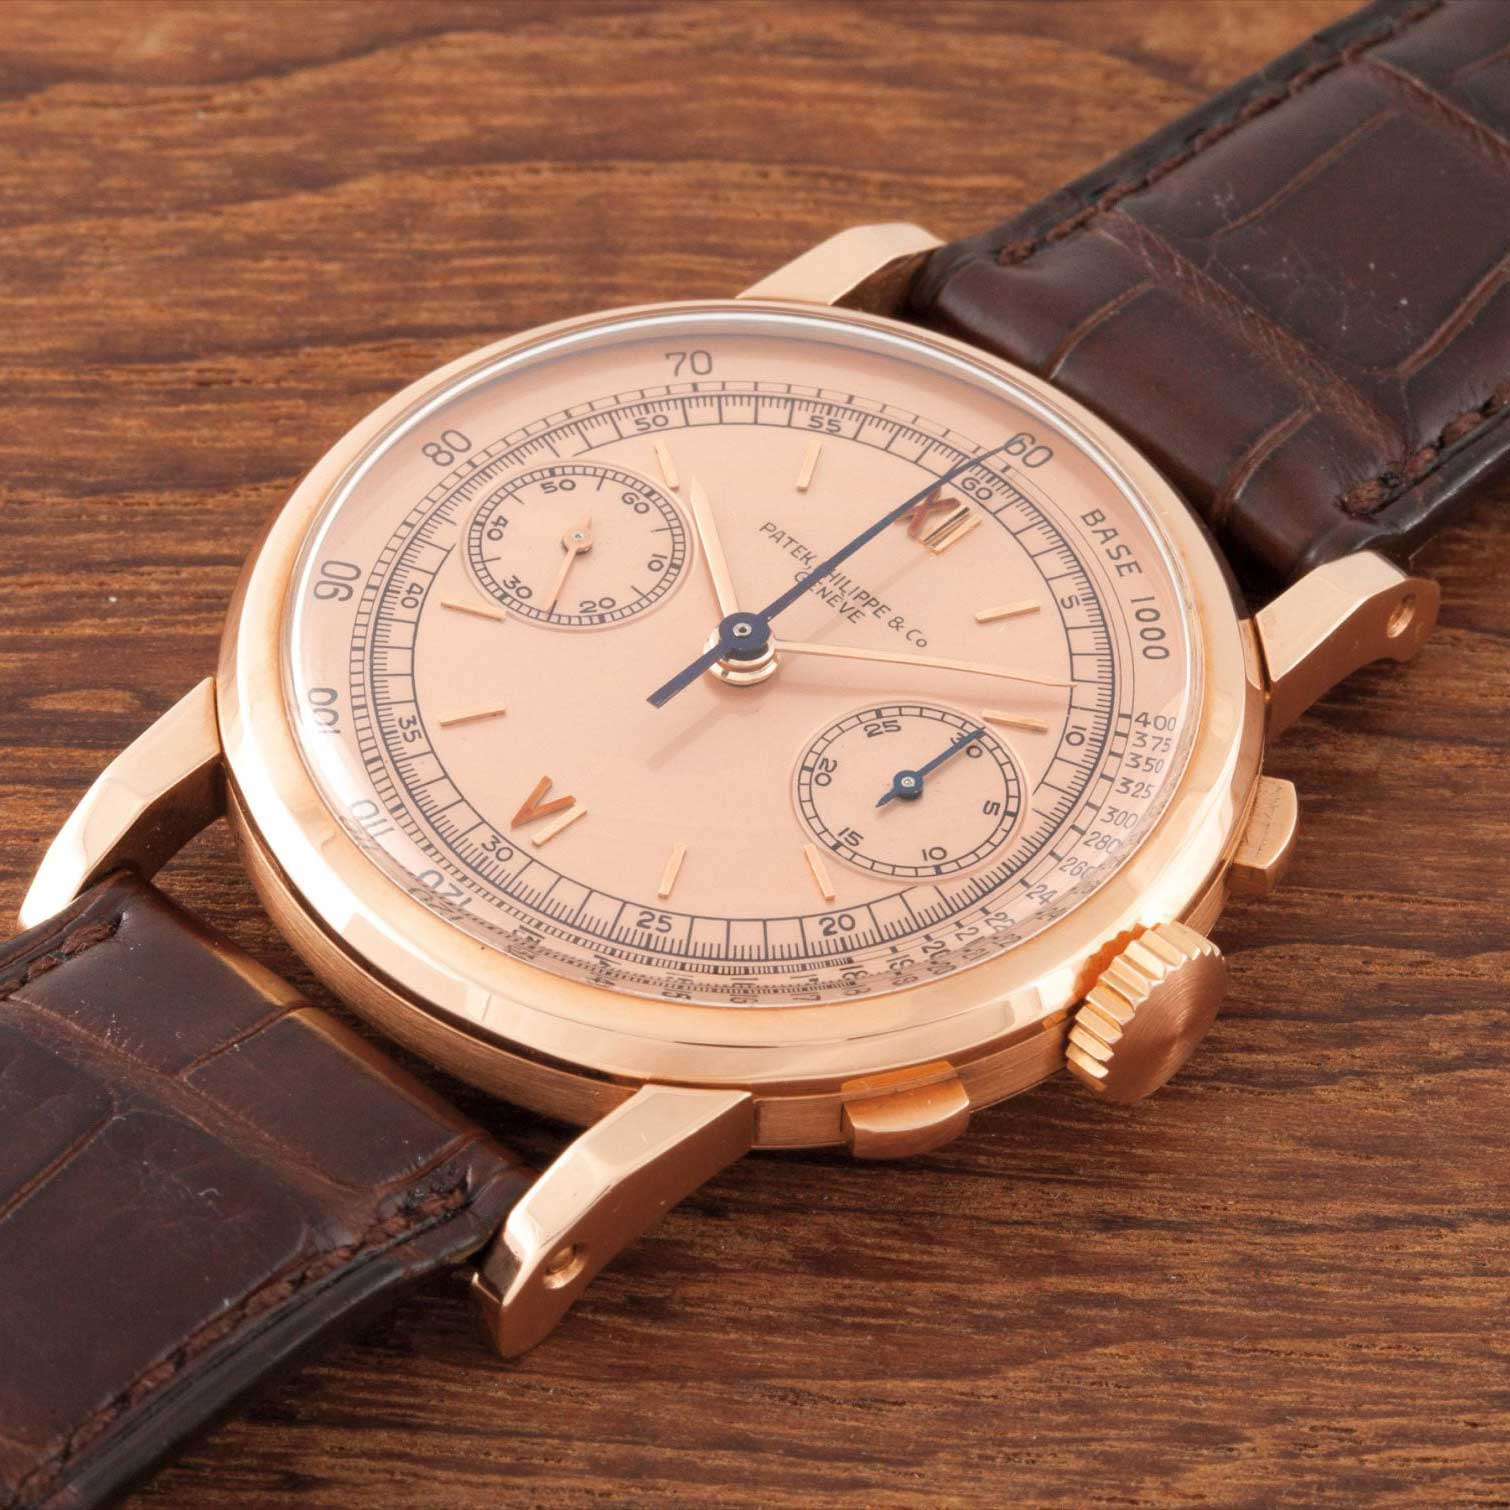 1942 Patek Philippe ref. 1506 pink gold chronograph with Roman numerals on pink dial (Image: PhillipsWatches.com)